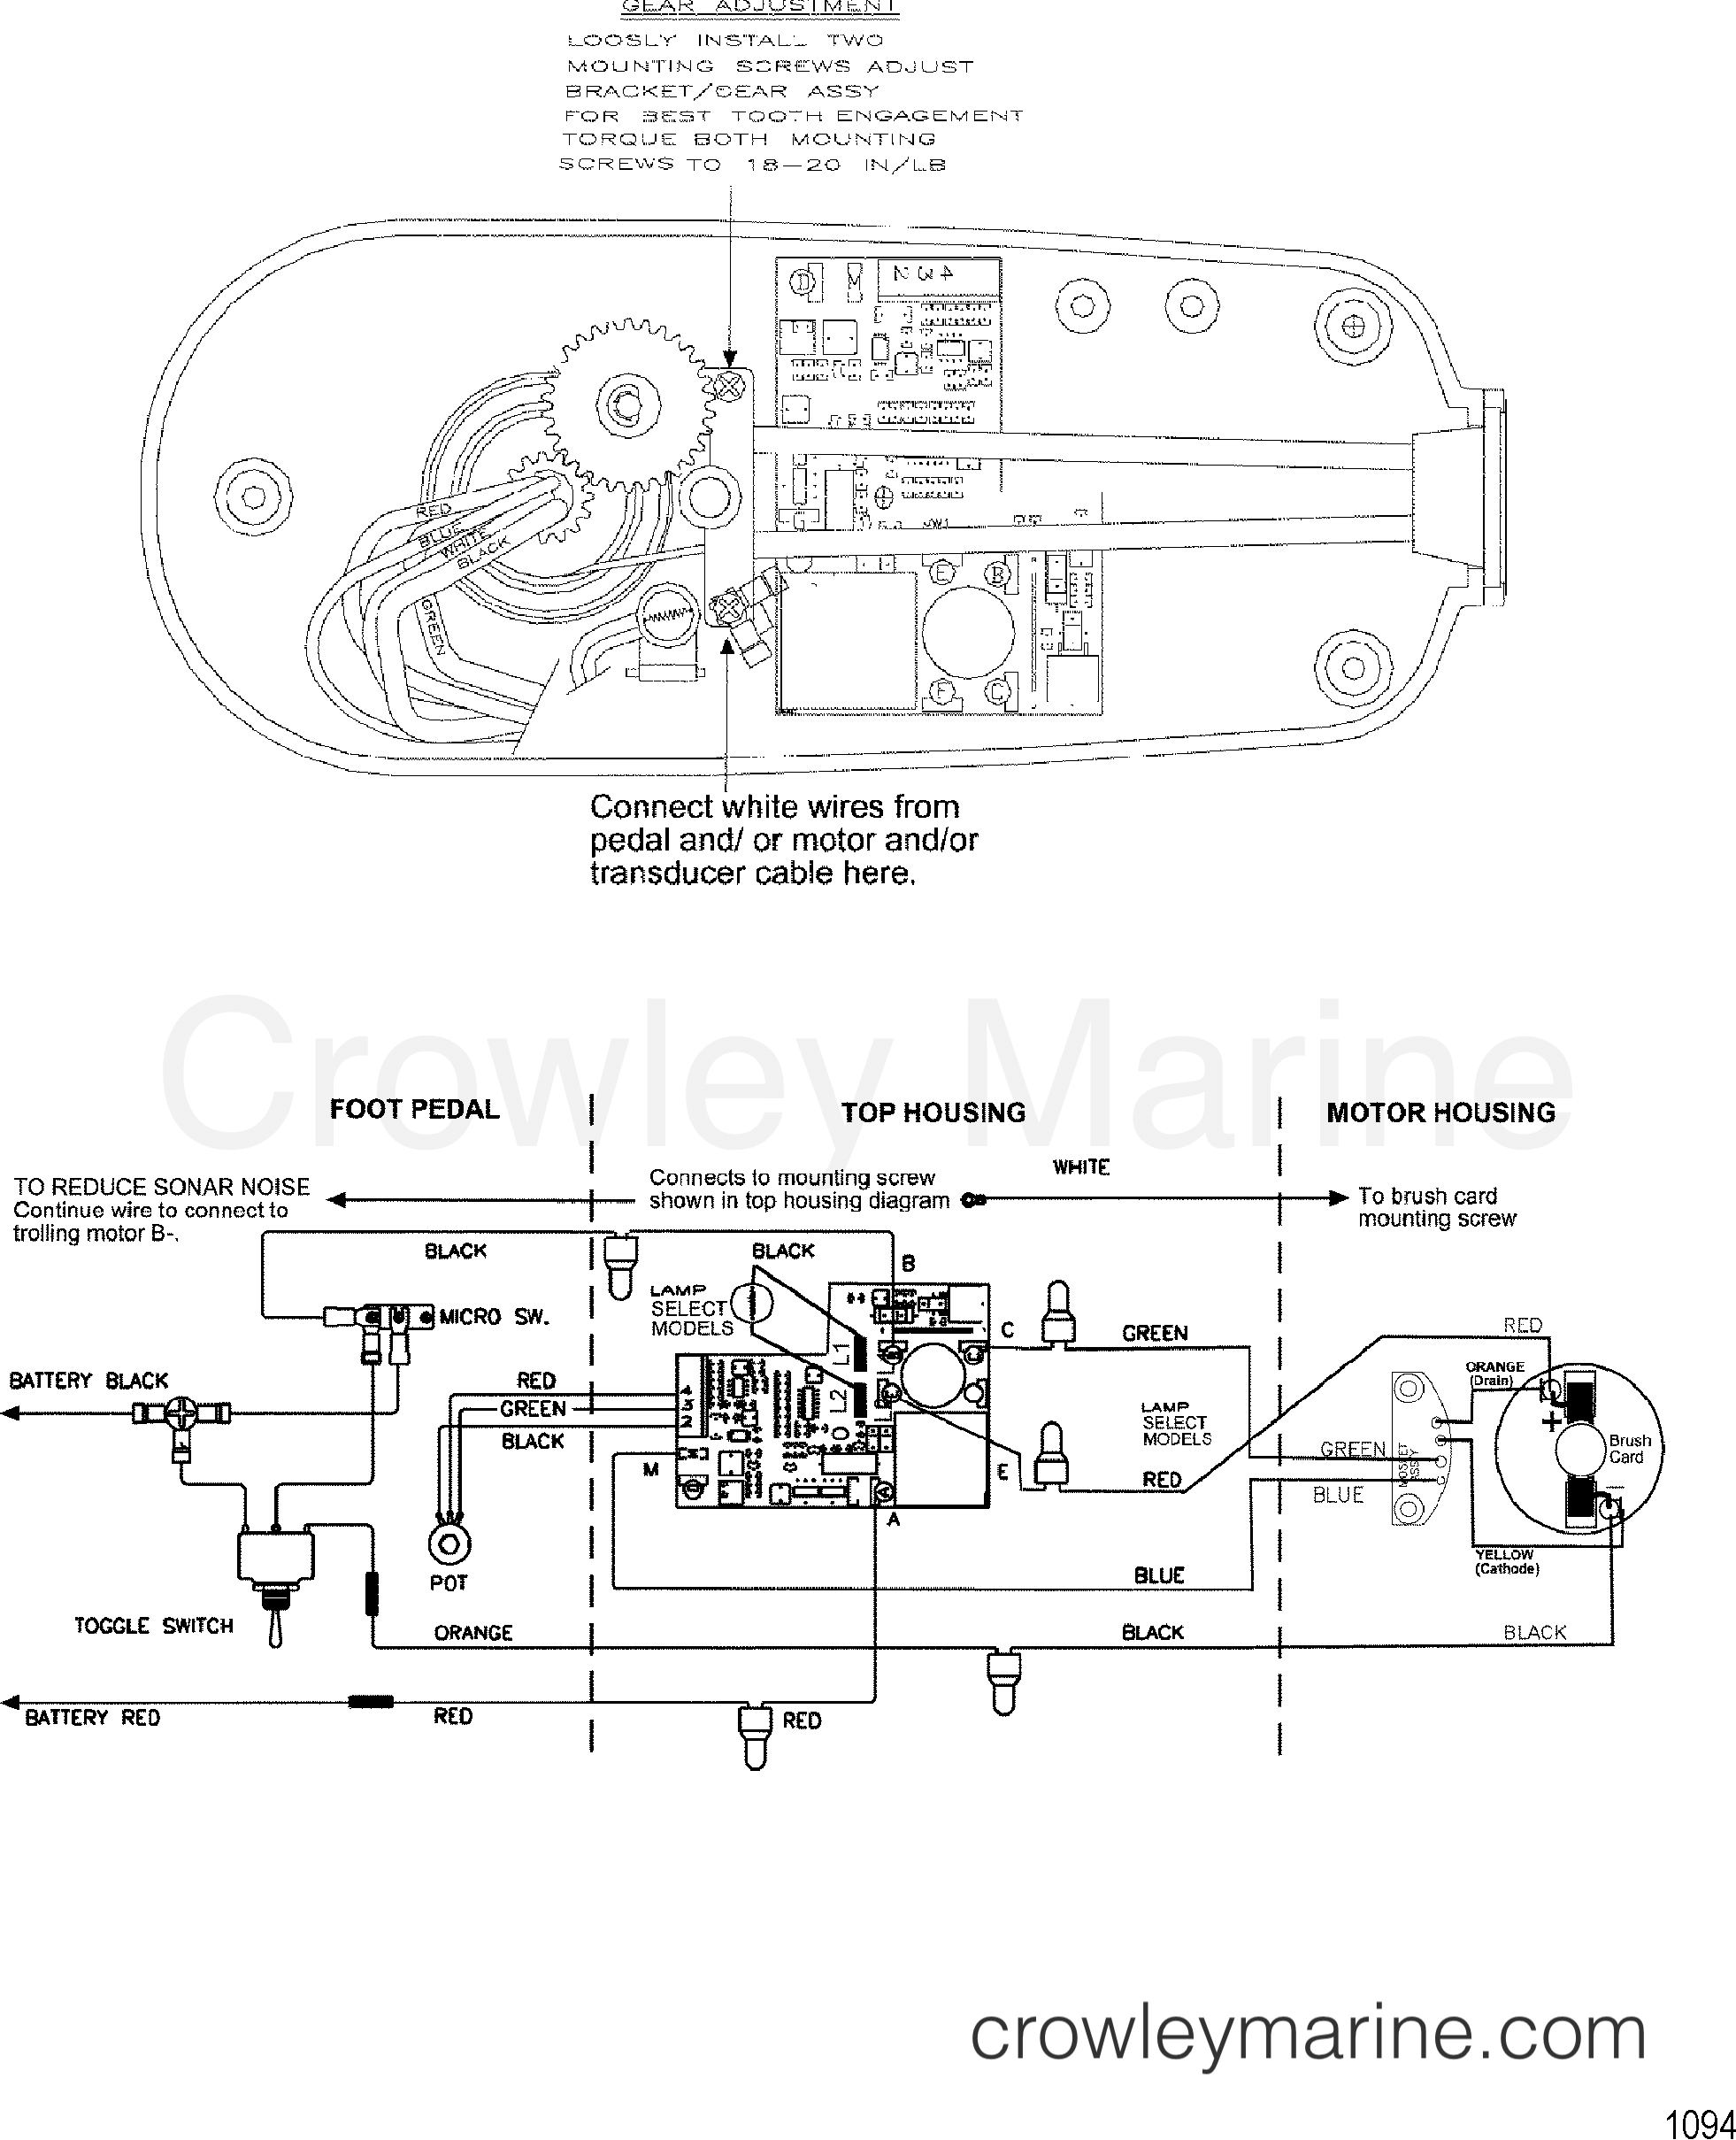 hnjaxlbM wire diagram(model te782v) (24 volt) 2001 motorguide [motorguide motorguide foot pedal wiring diagram at mifinder.co